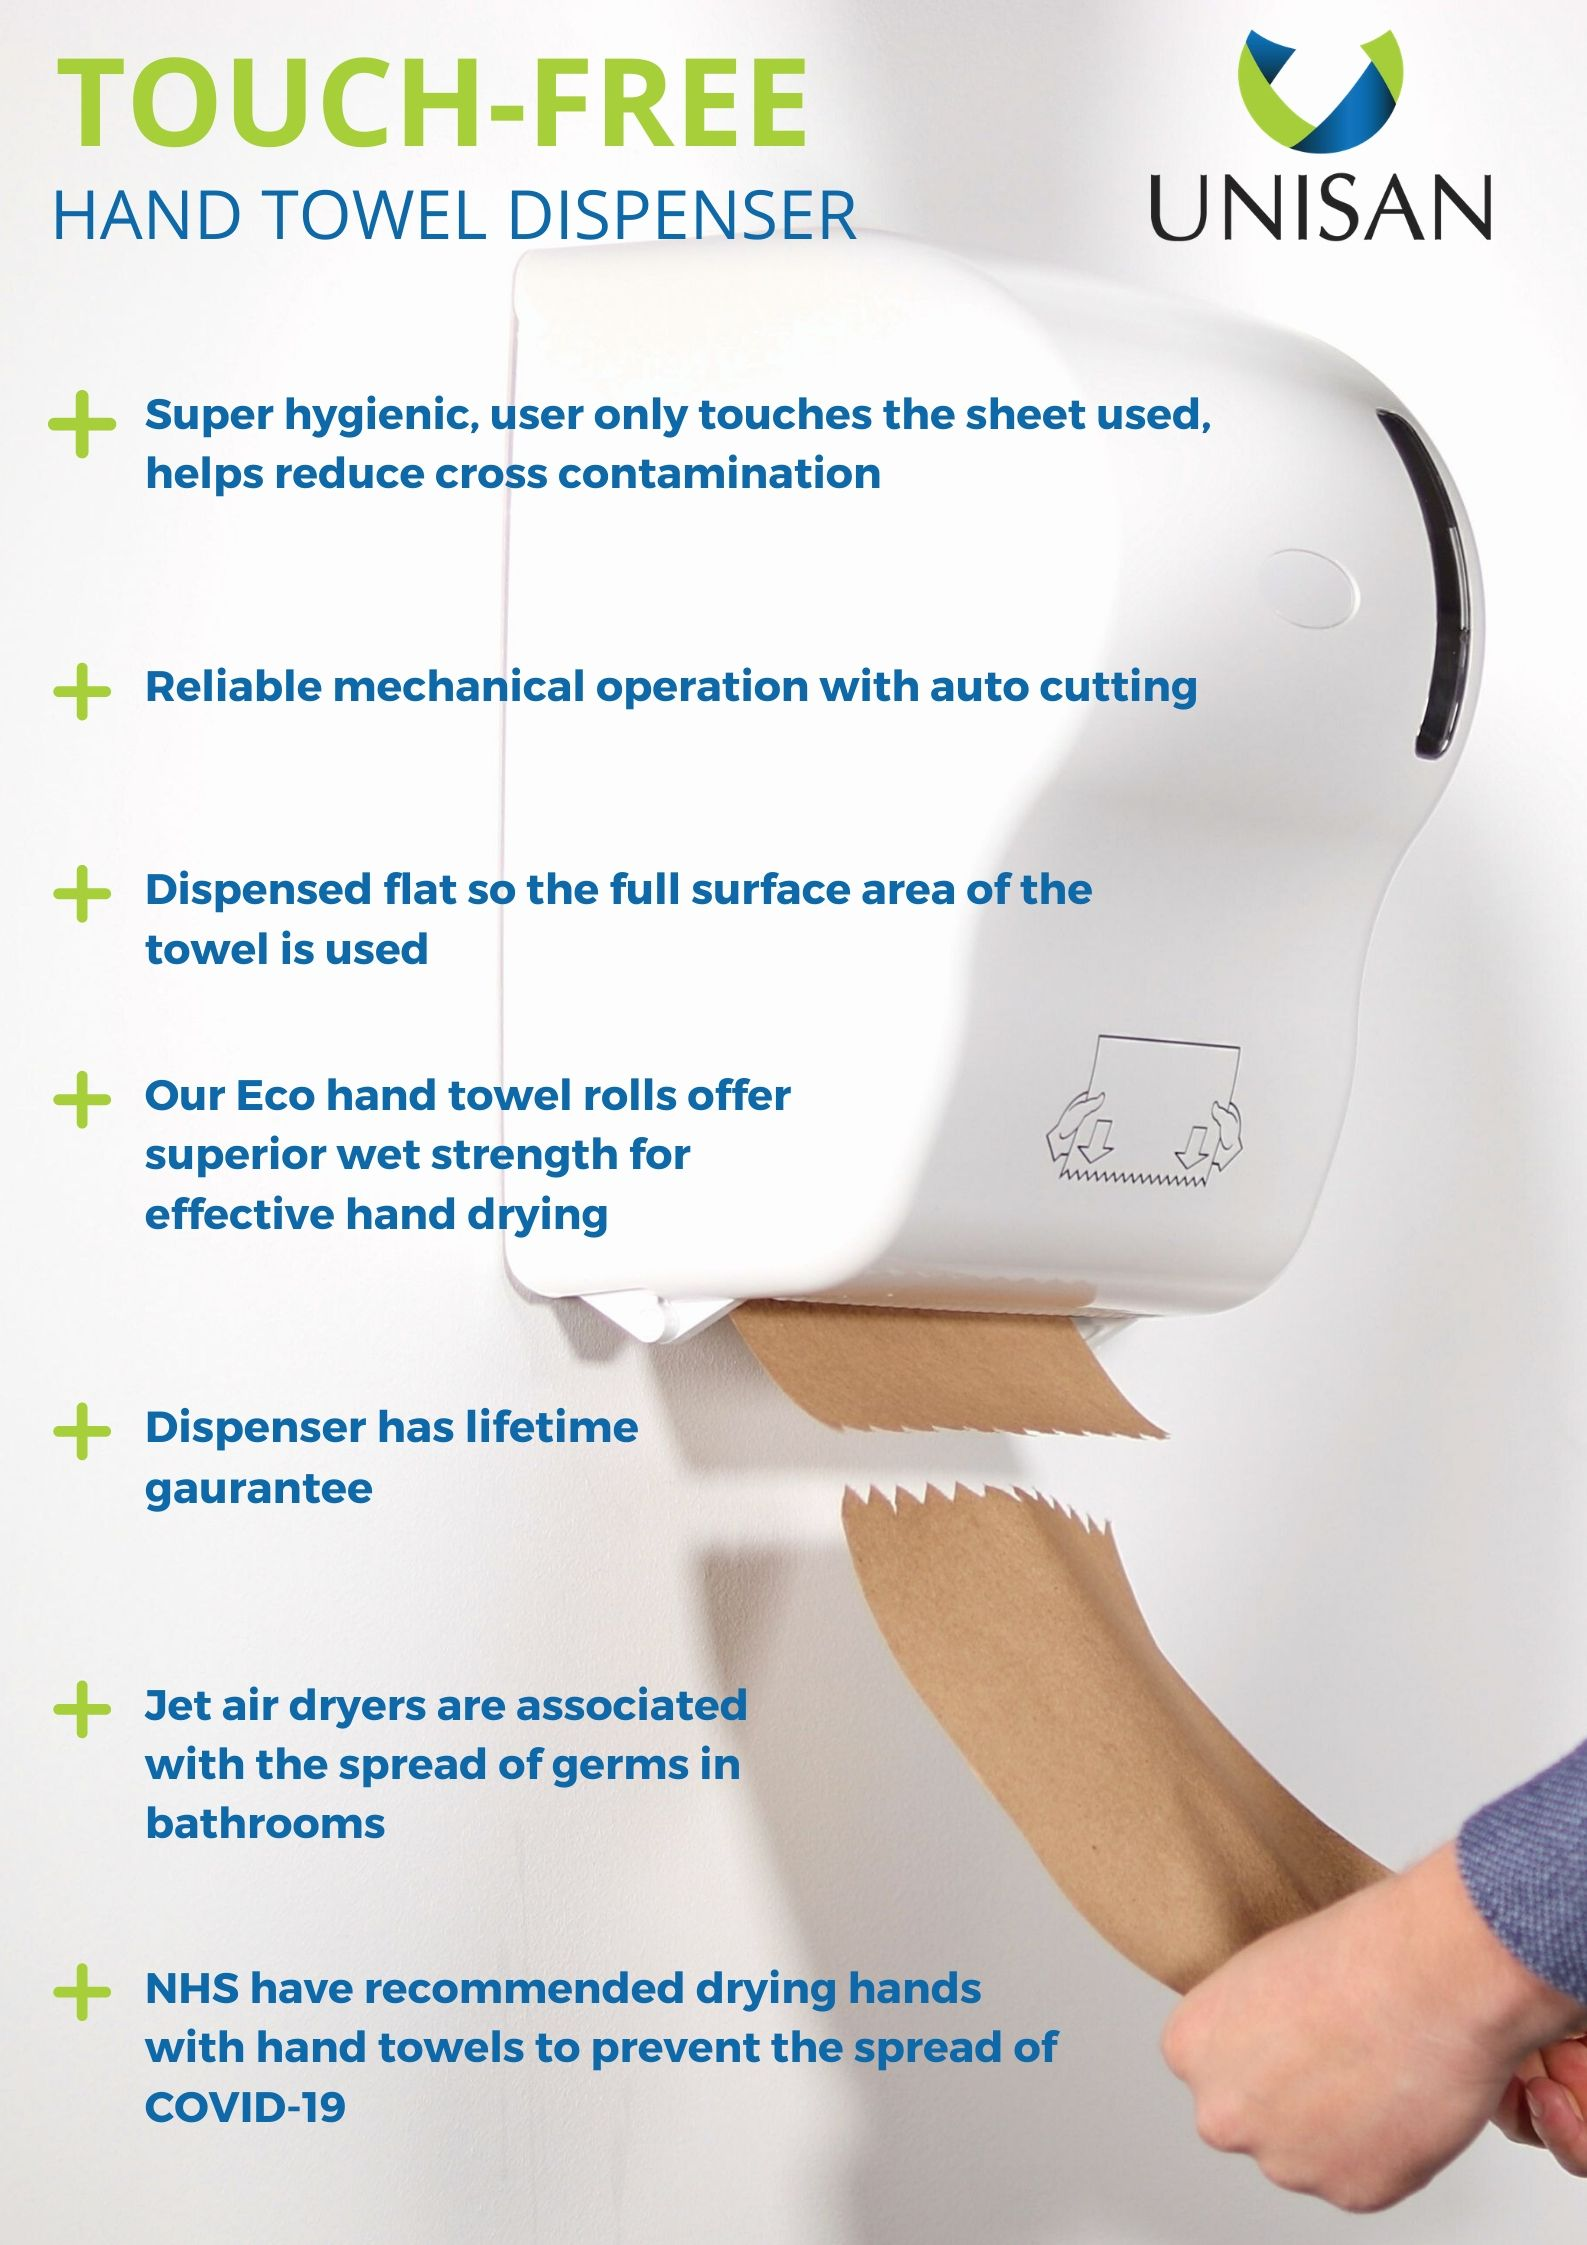 touch free hygienic hand towel dispensers